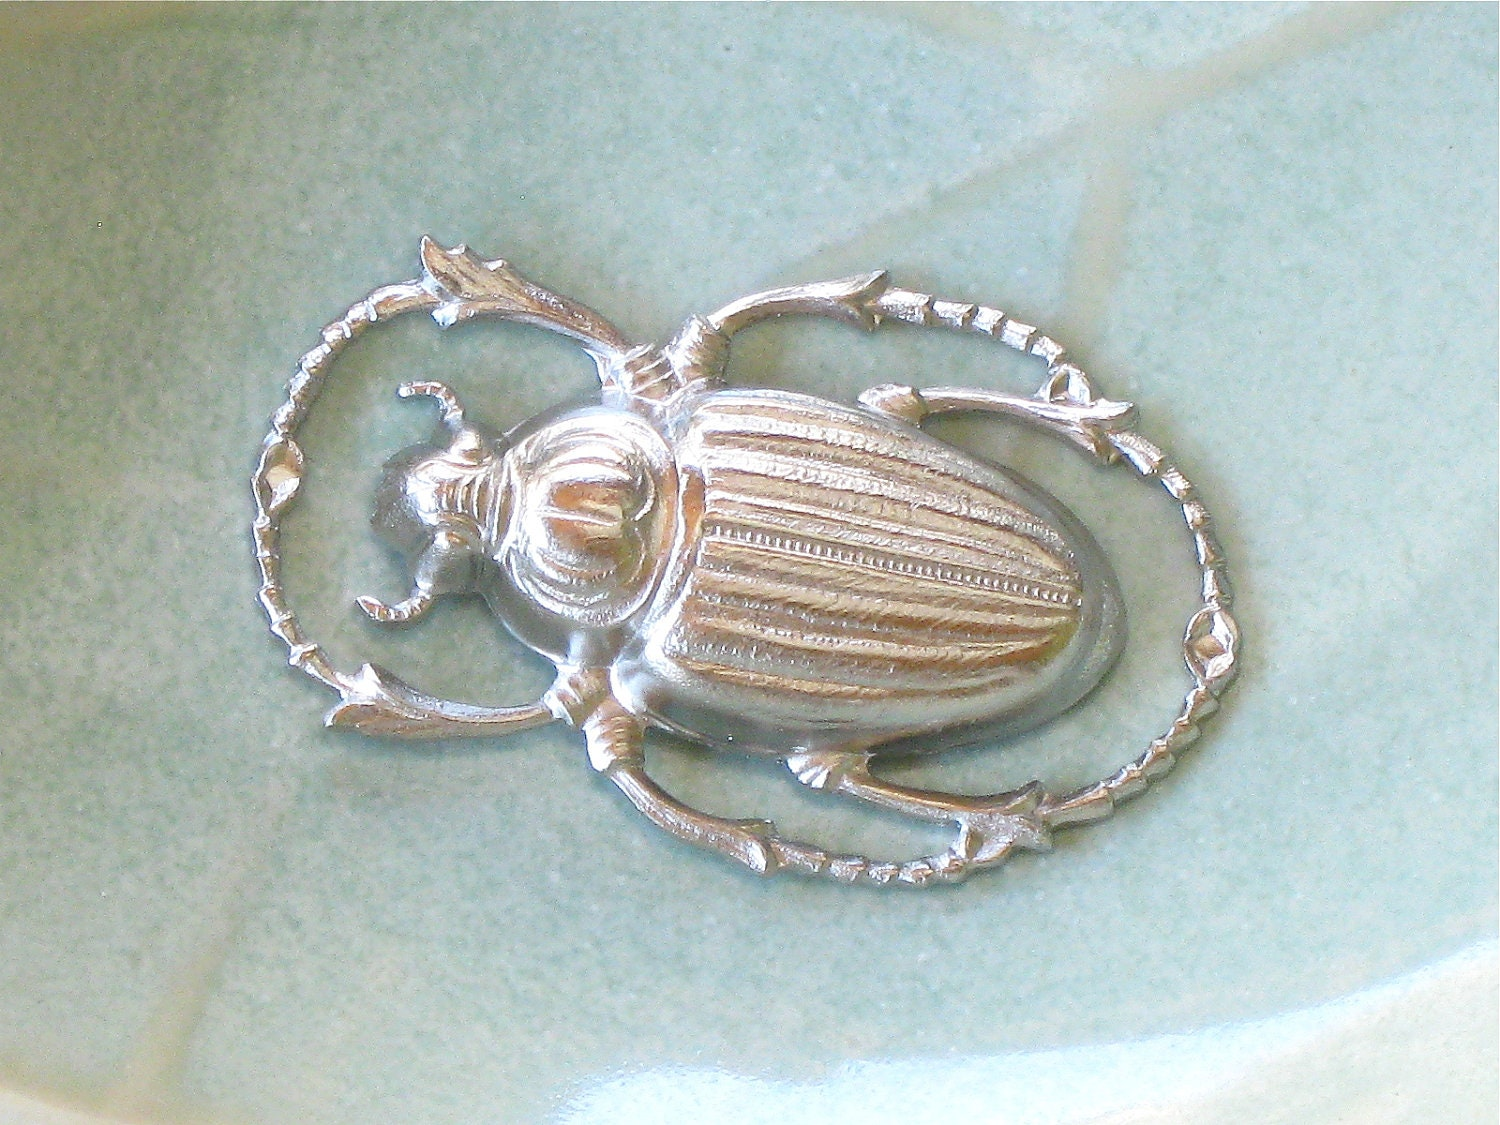 large SCARAB beetle silver jewelry connector charm. 32mm x